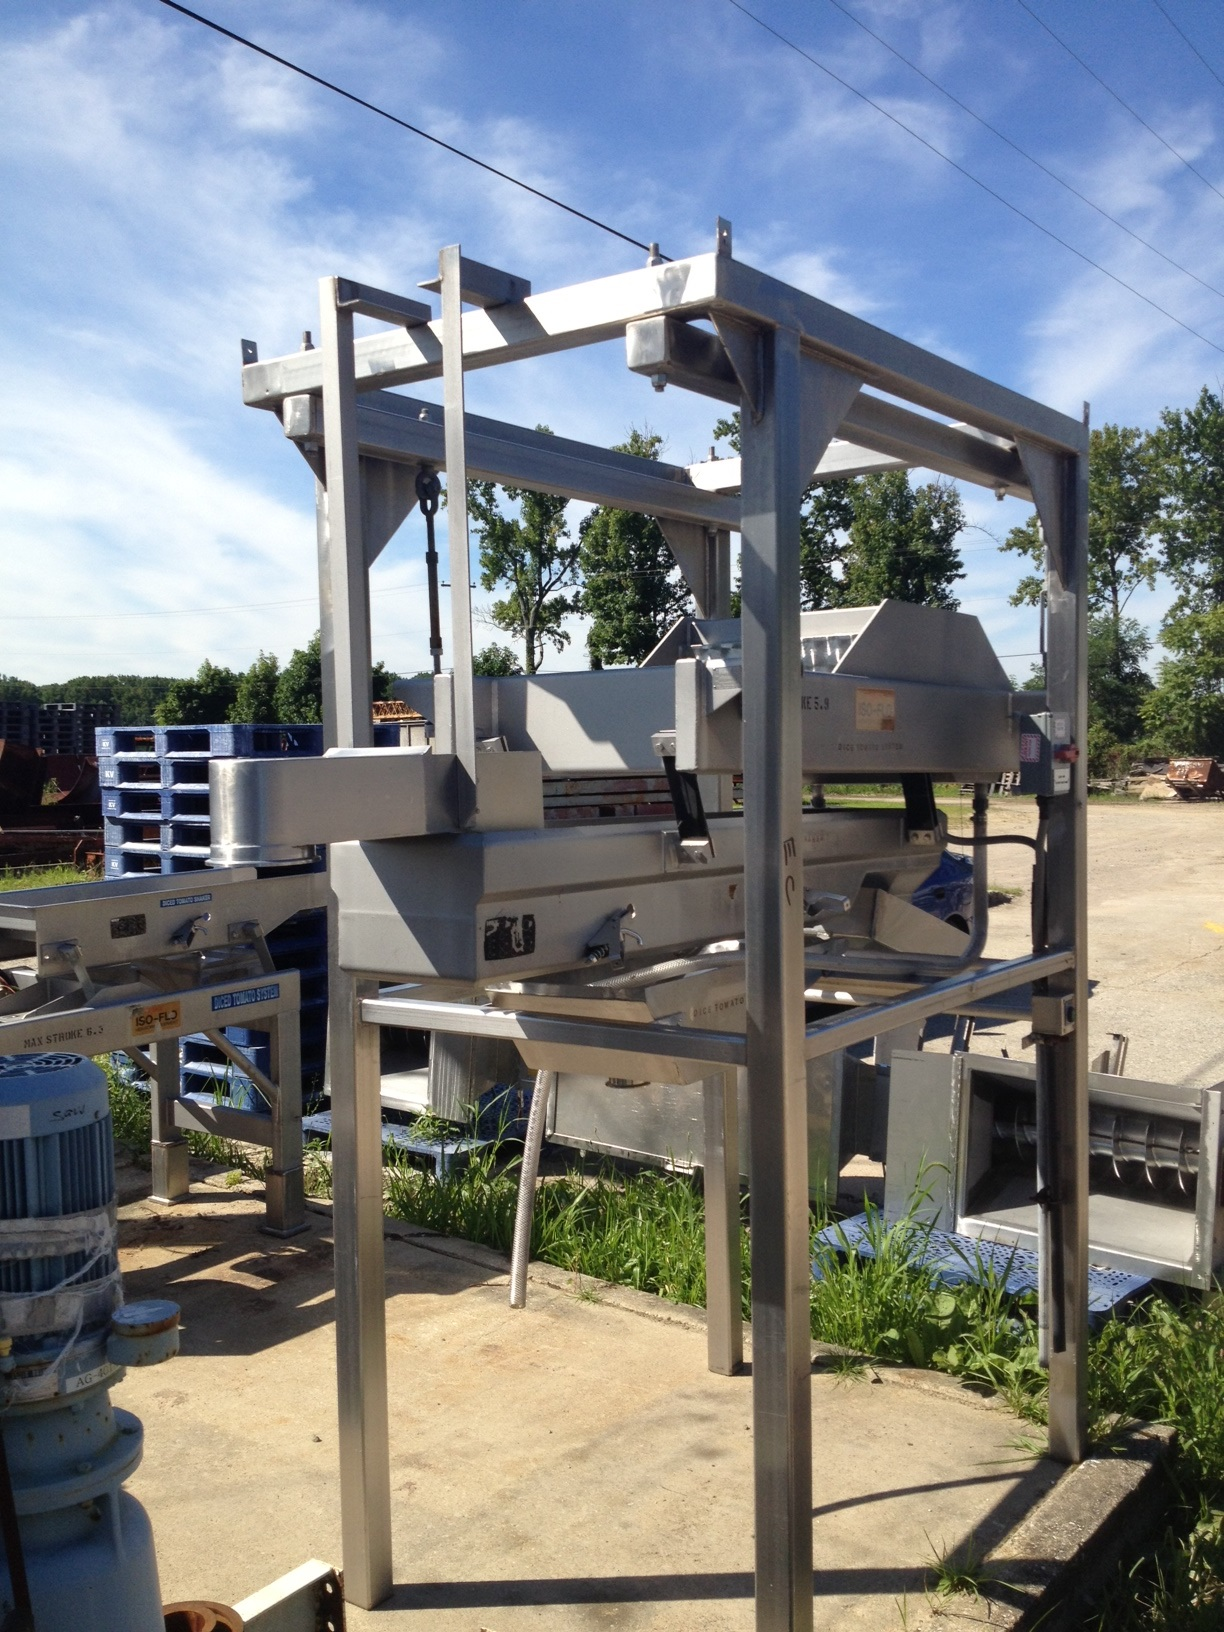 Key Iso-Flo Vibratory Conveyor, Vibrating Shaker/Feeder. Suspended in frame. Conveyor is 1' wide x 6' Lgth. Has dewatering screen and pan feeder. Approx. 8'4